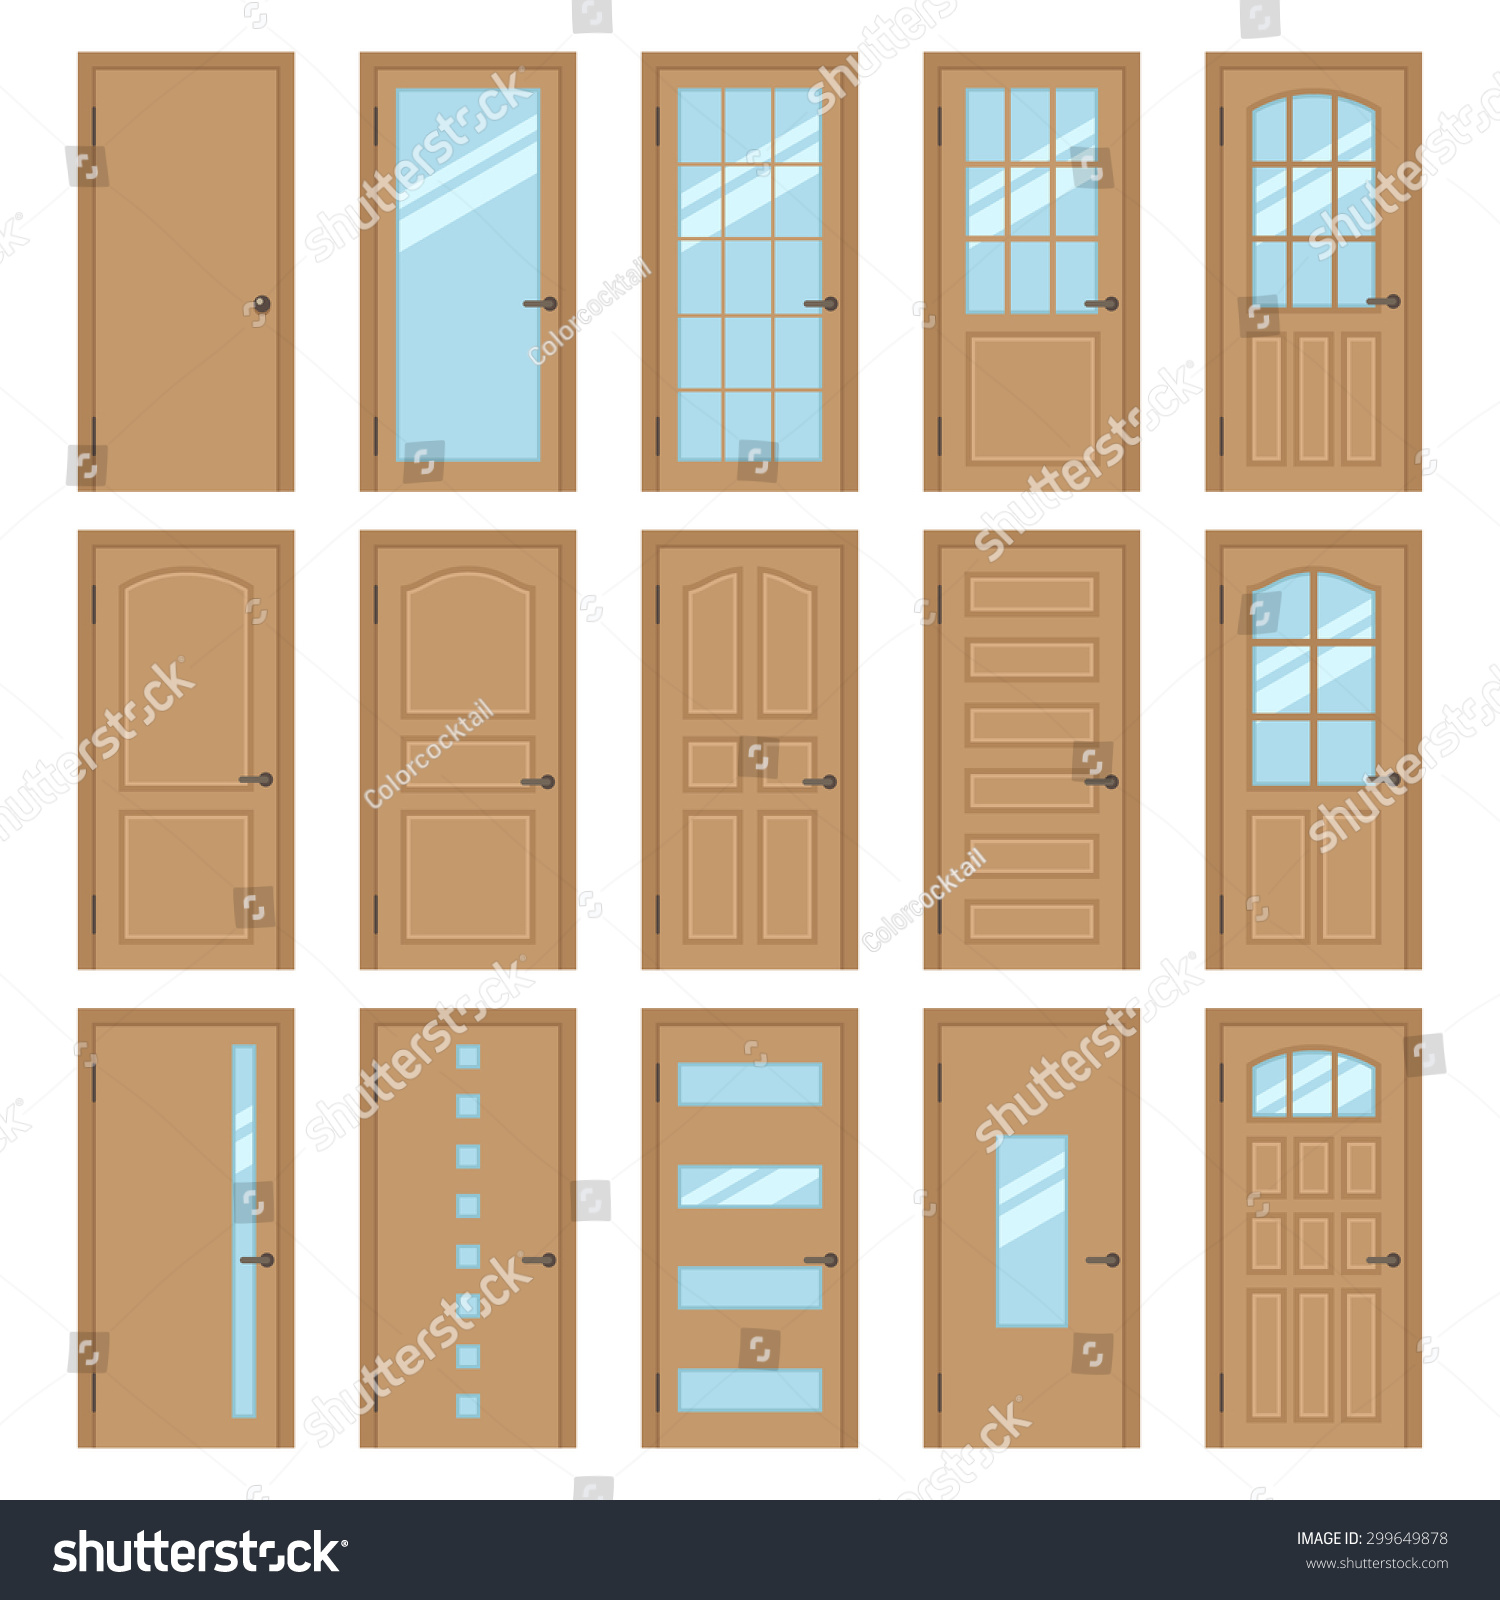 Vector collection various types wooden interior stock for Different types of interior doors